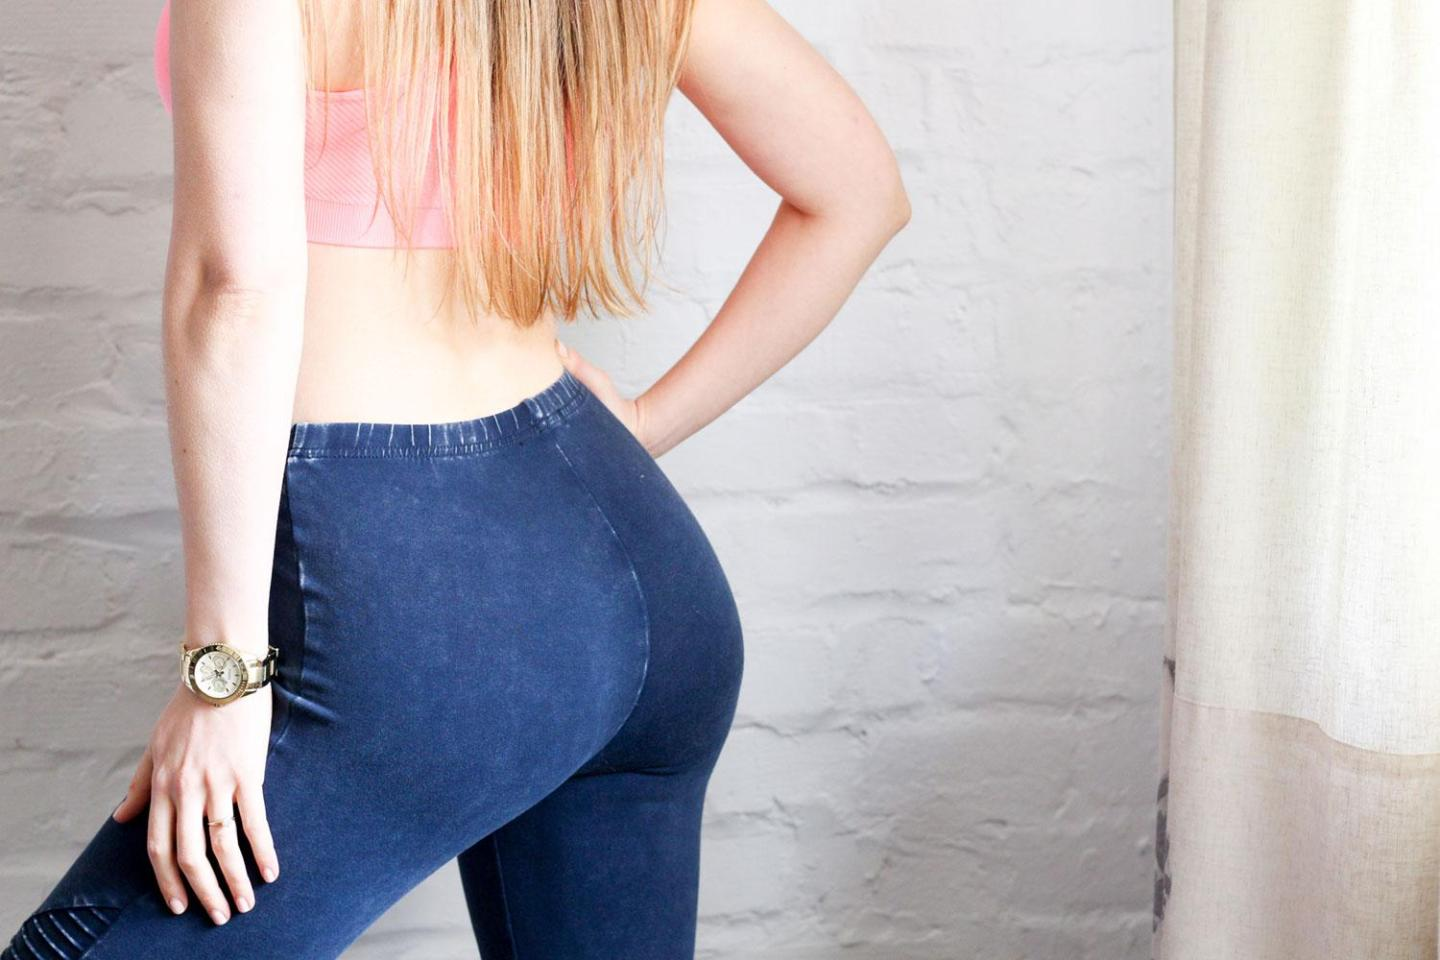 15 Minutes to Your Best Booty – Butt & Thigh Workout for a Bigger Butt